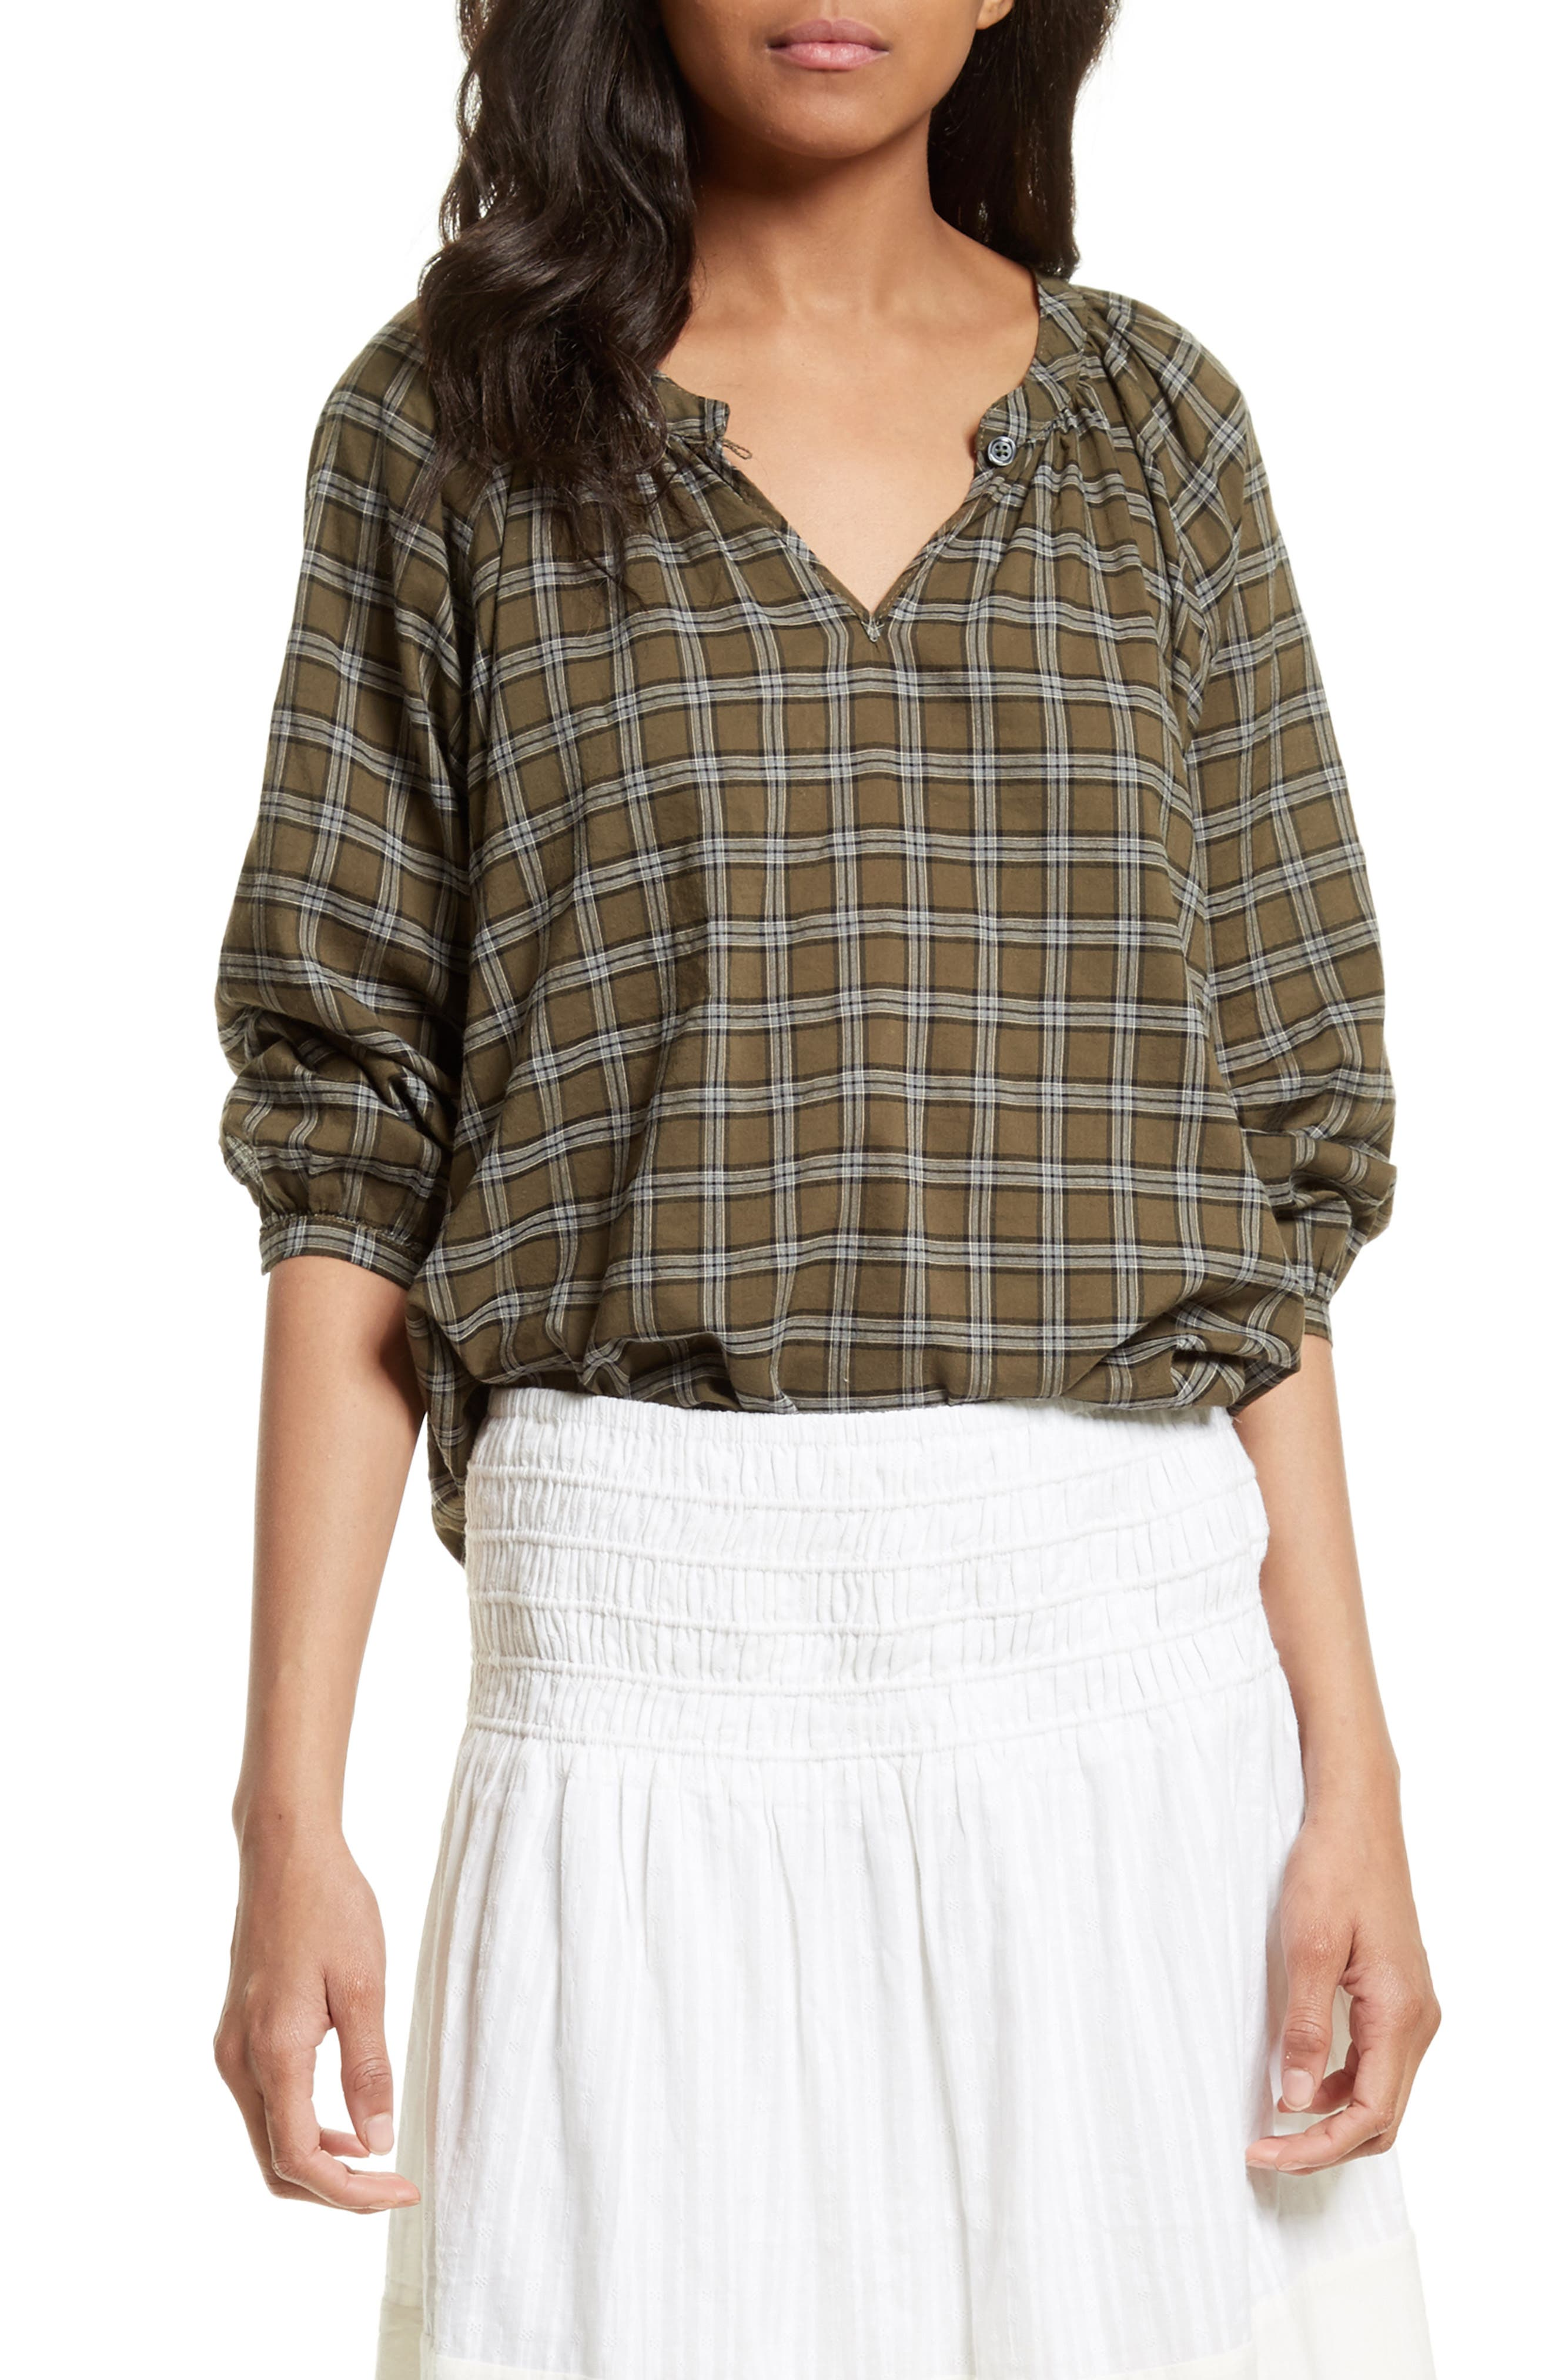 The Wildflower Plaid Top,                             Main thumbnail 1, color,                             300